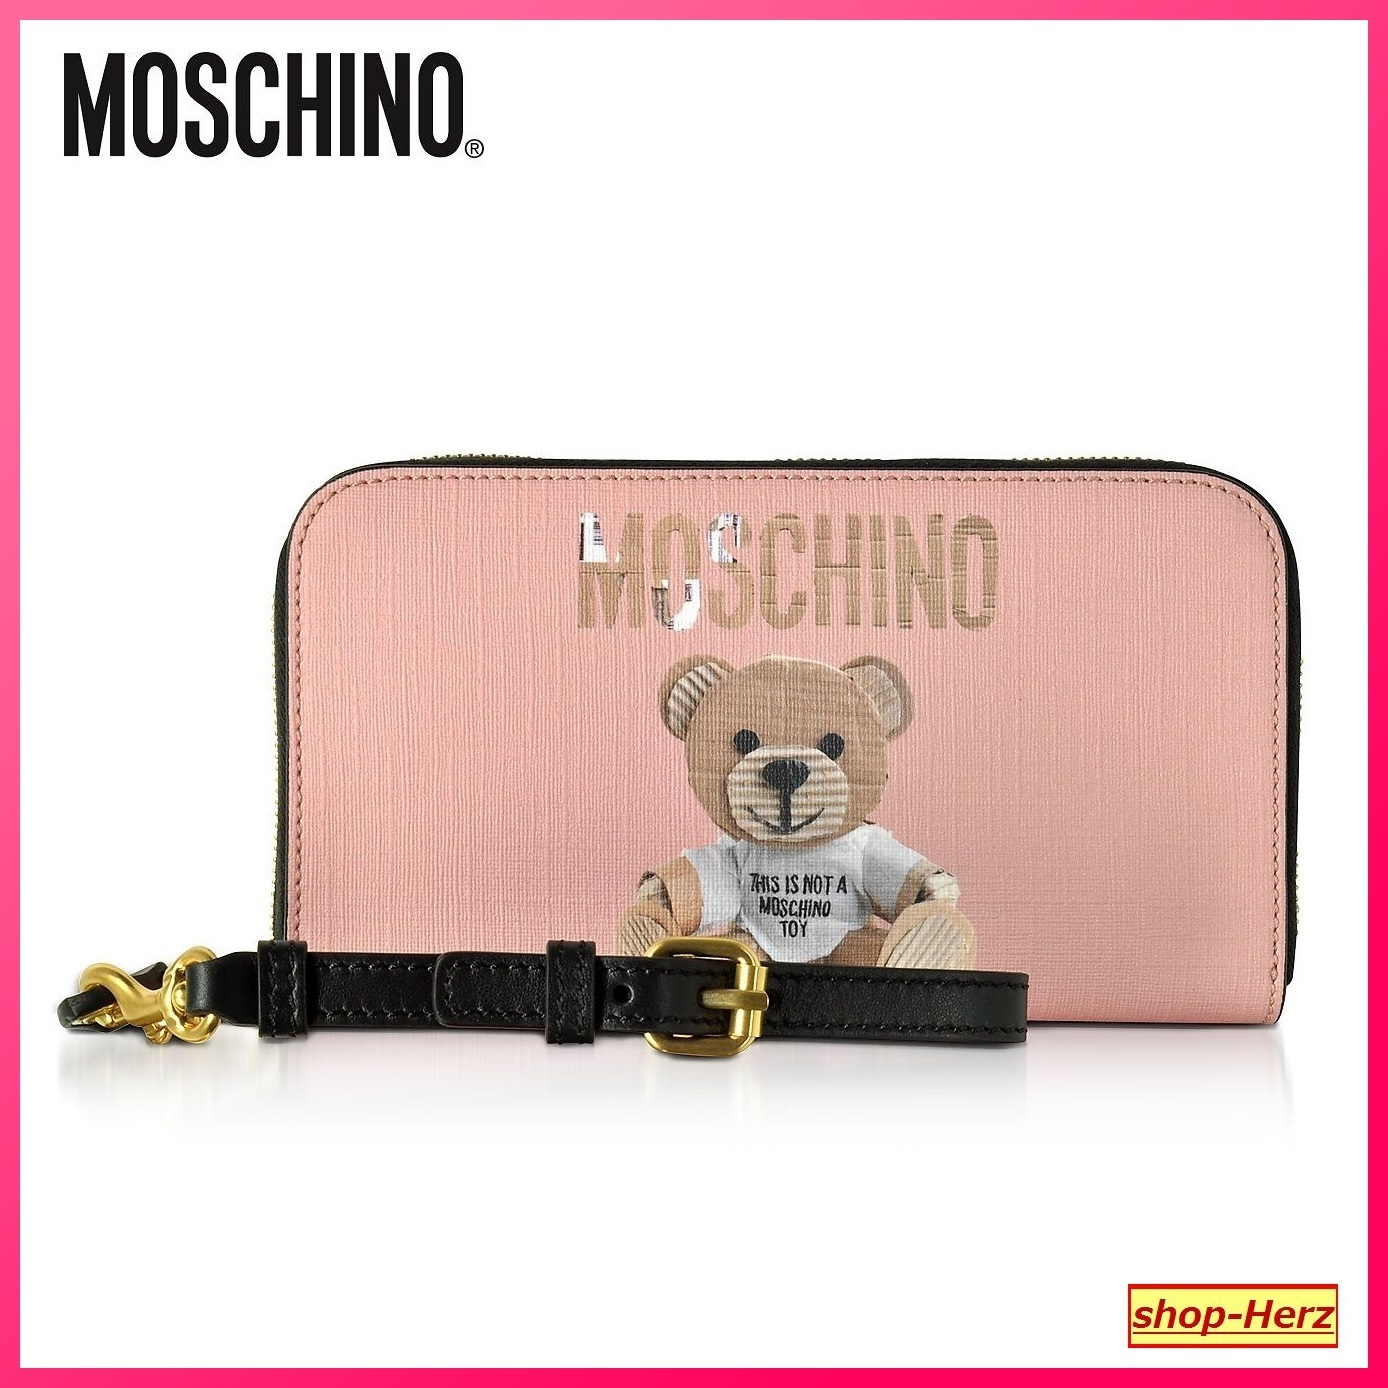 ★Moschino★ Pink Teddy Bear Saffiano Leather 長財布 関税込